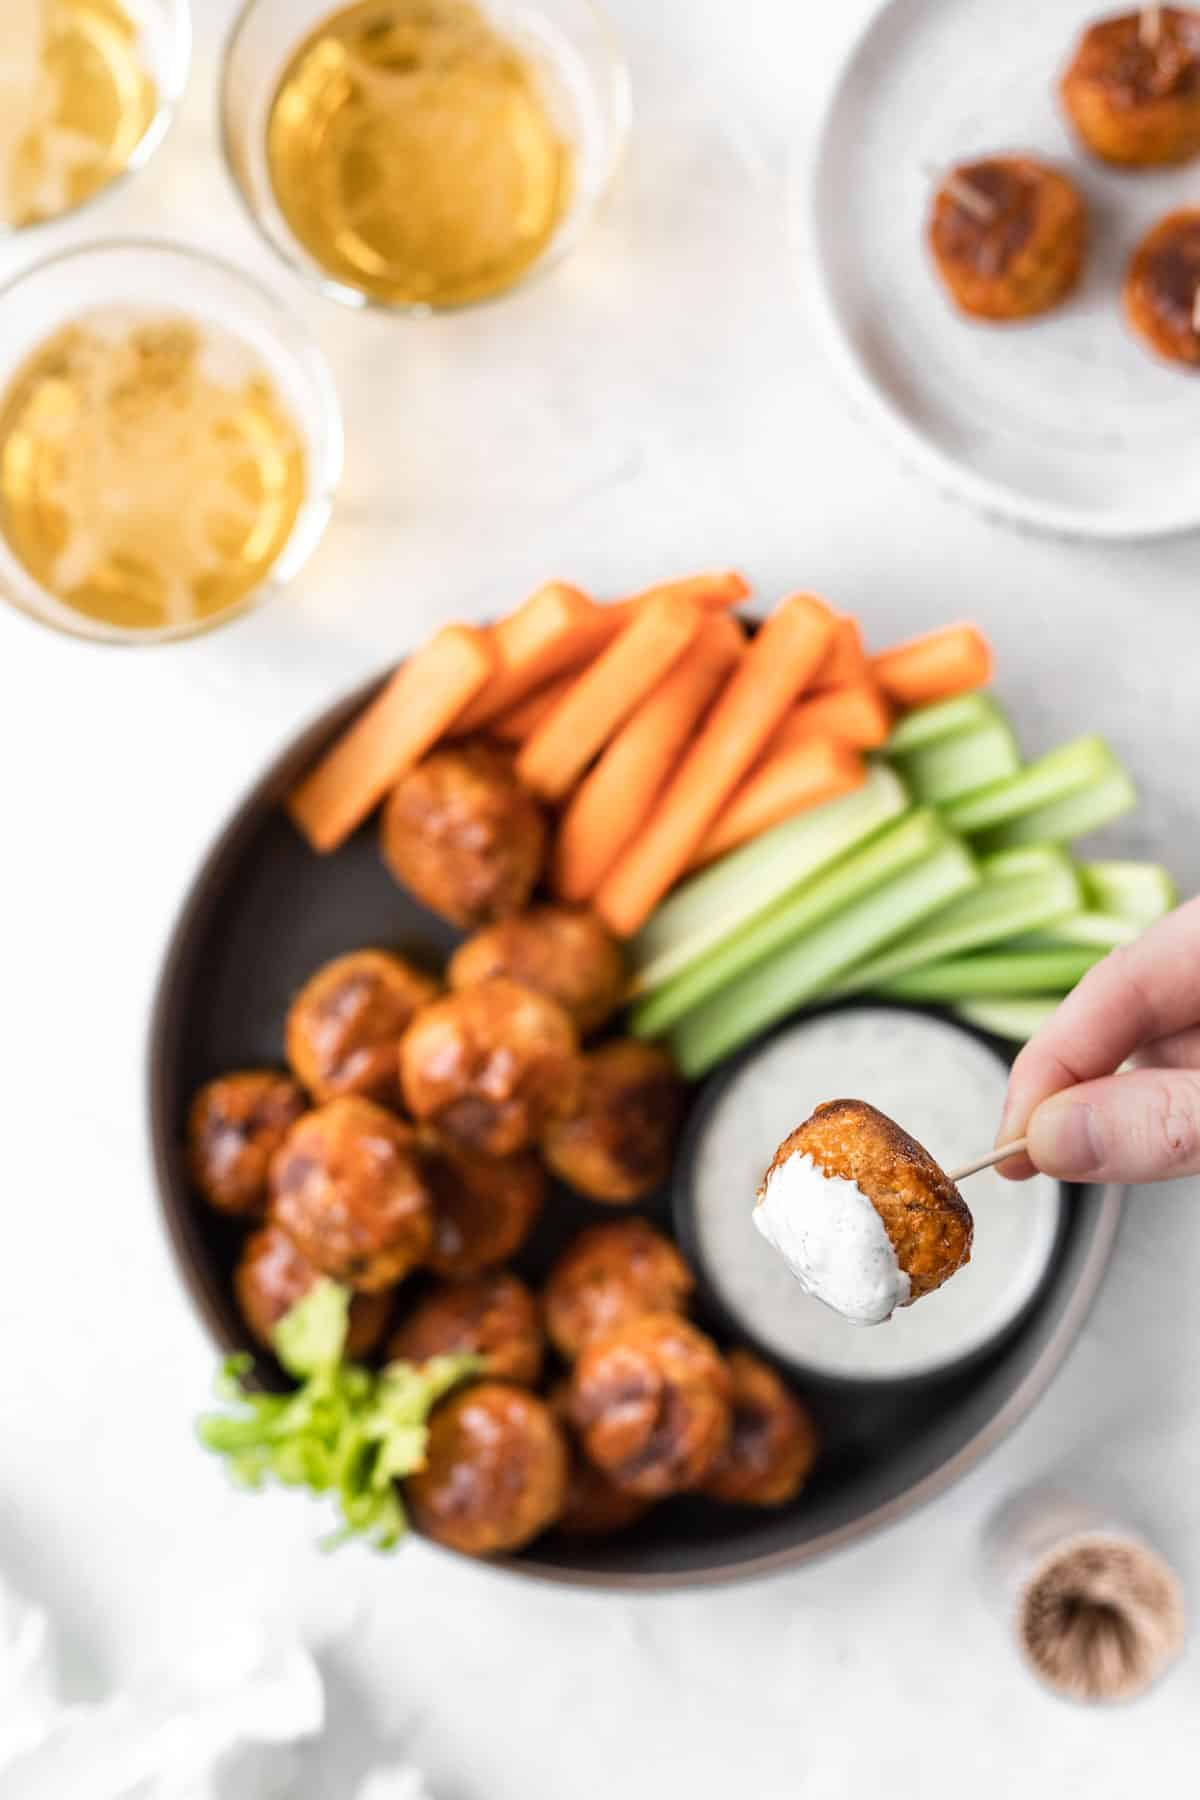 A hand dipping a buffalo turkey meatball in feta ranch with glasses of beer, celery and carrot sticks, and a jar of toothpicks off to the side.